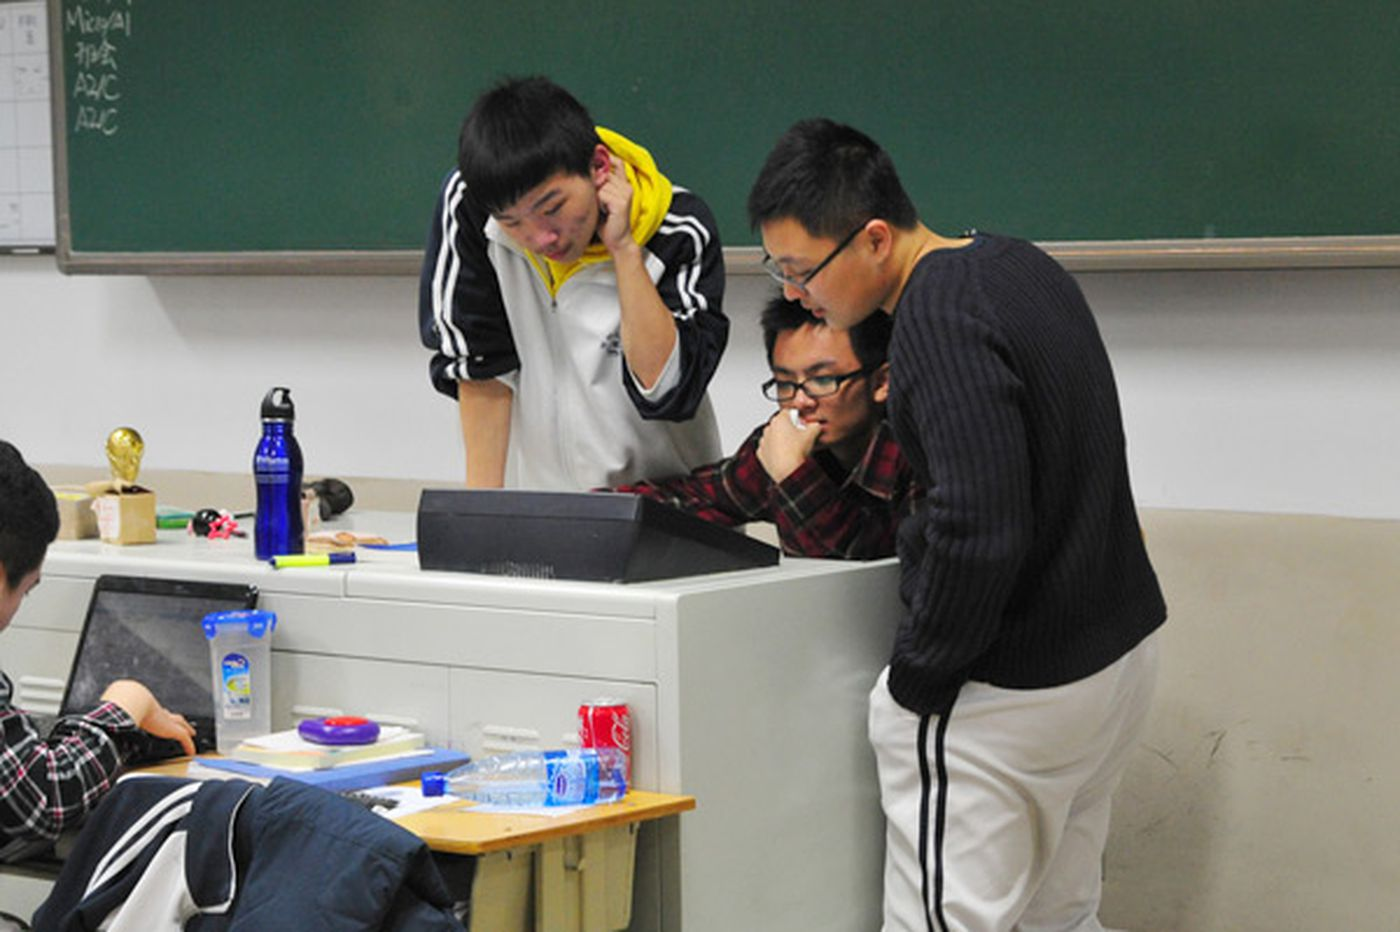 Chinese school offshores its graduates to U.S. colleges